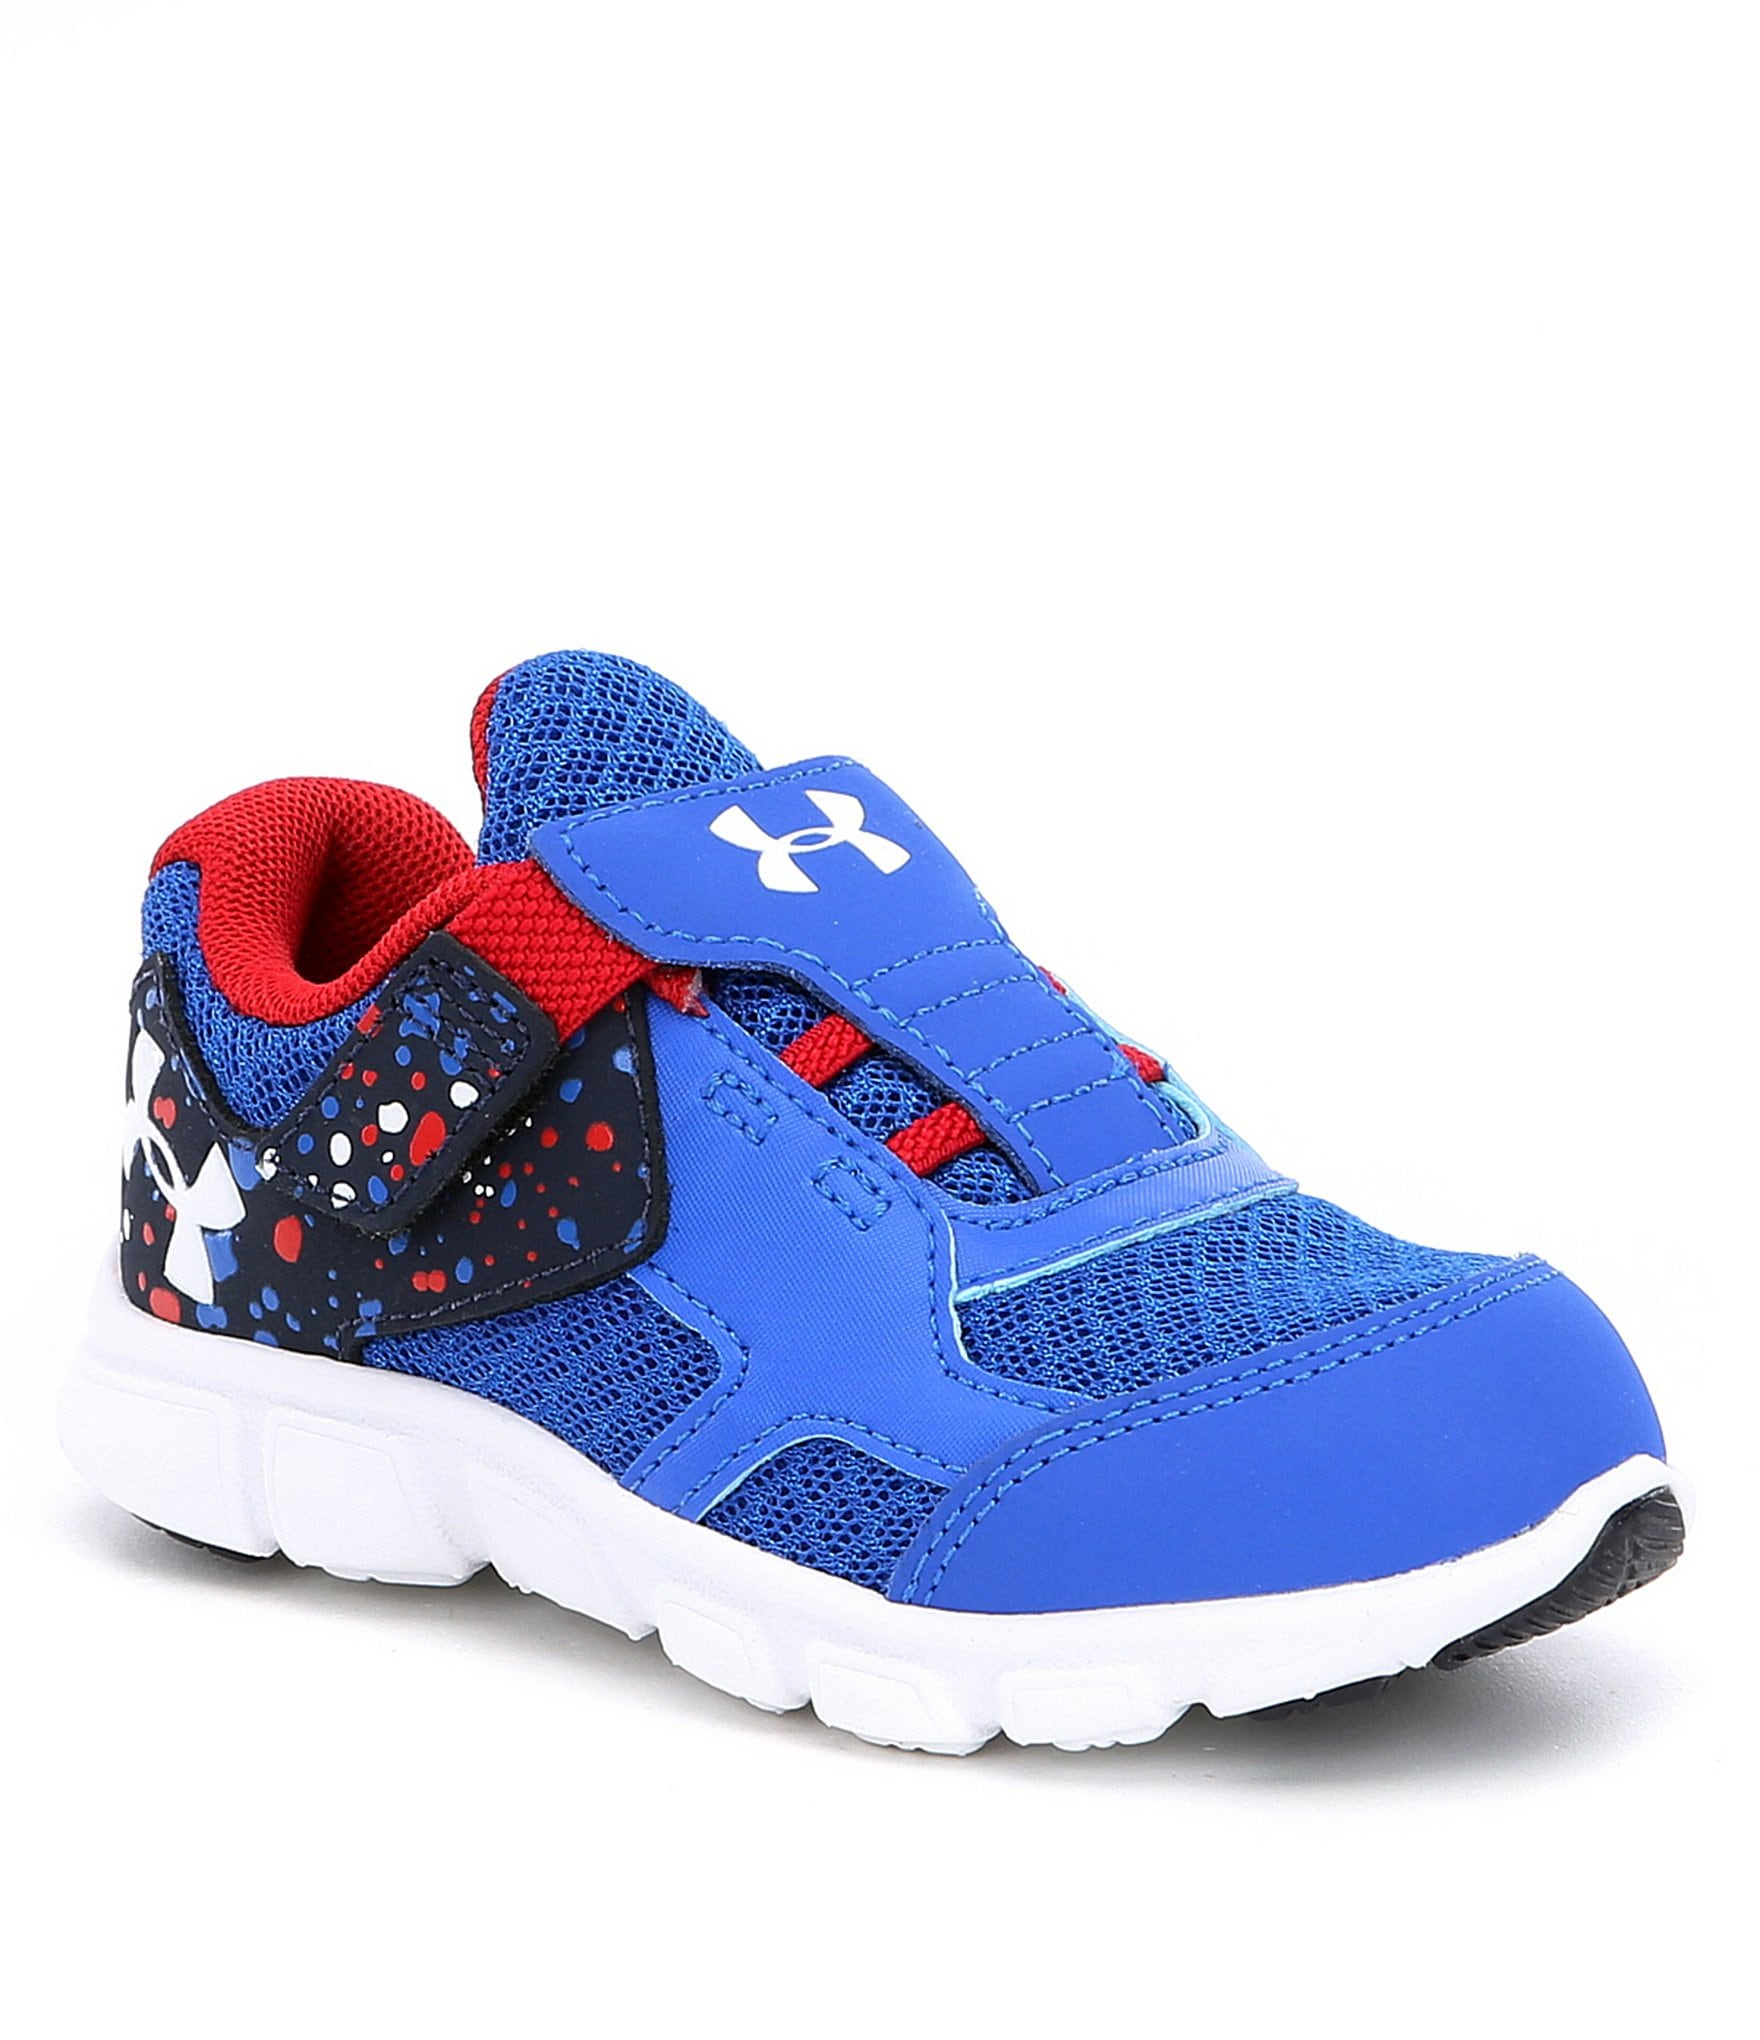 Under Armour Thrill Running Shoes Reviews